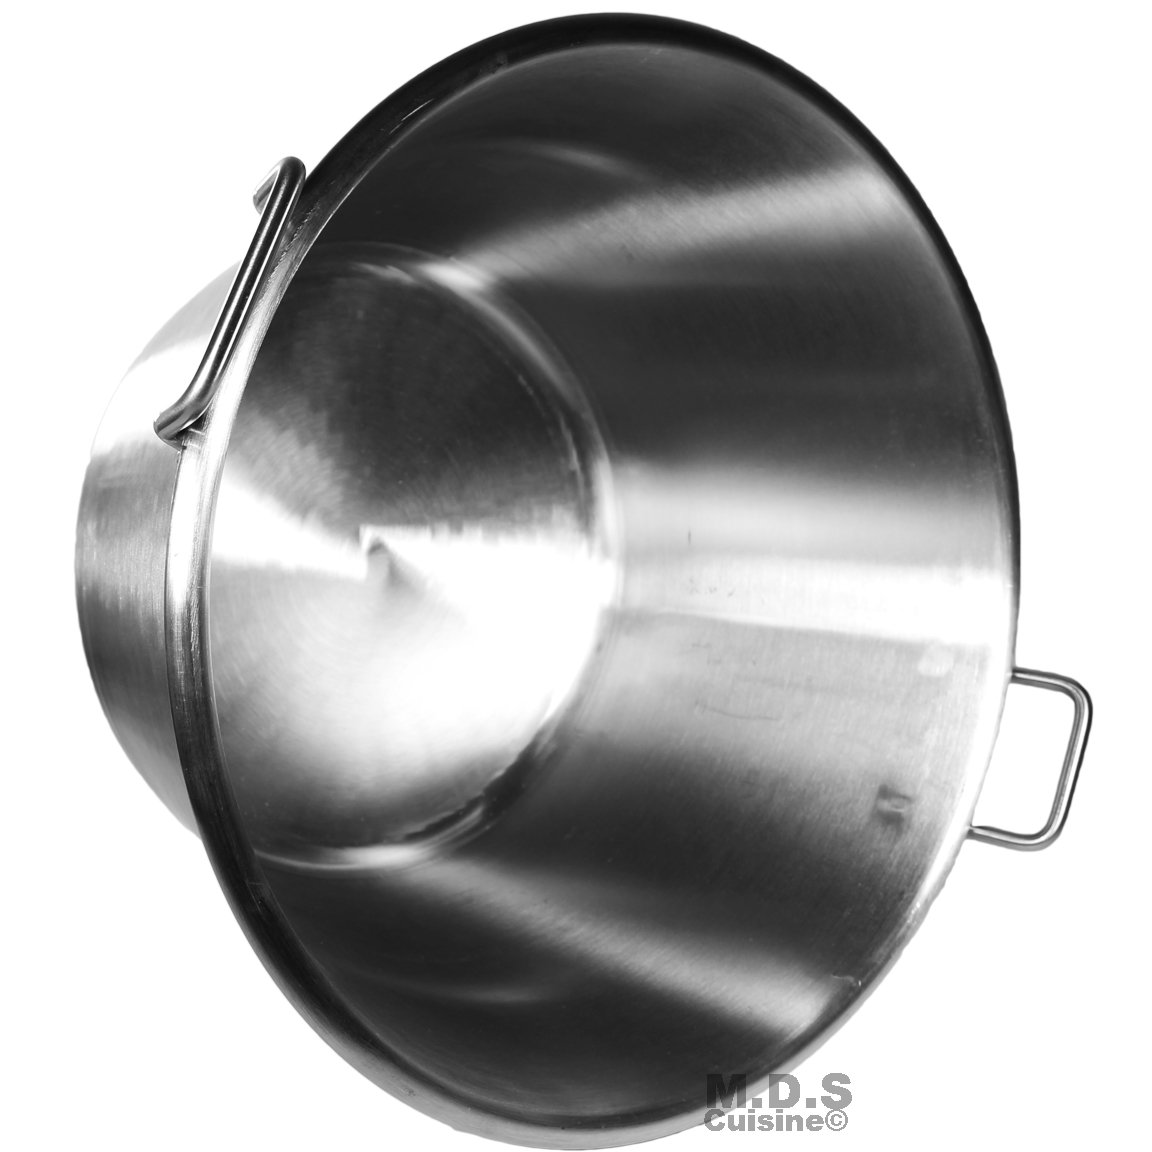 Large Cazo Stainless Steel 21'' Caso para Carnitas Gas Heavy Duty Wok Acero Inoxidable by M.D.S Cuisine Cookwares (Image #4)